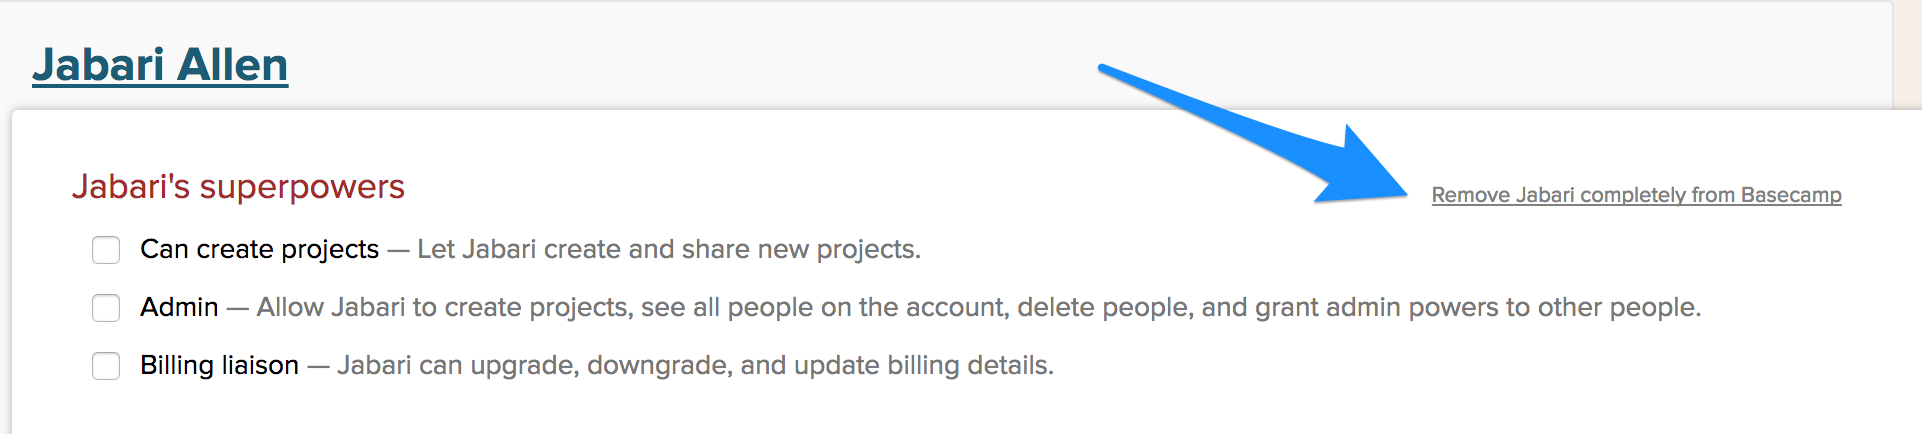 Adding and Removing People - Basecamp 2 Help